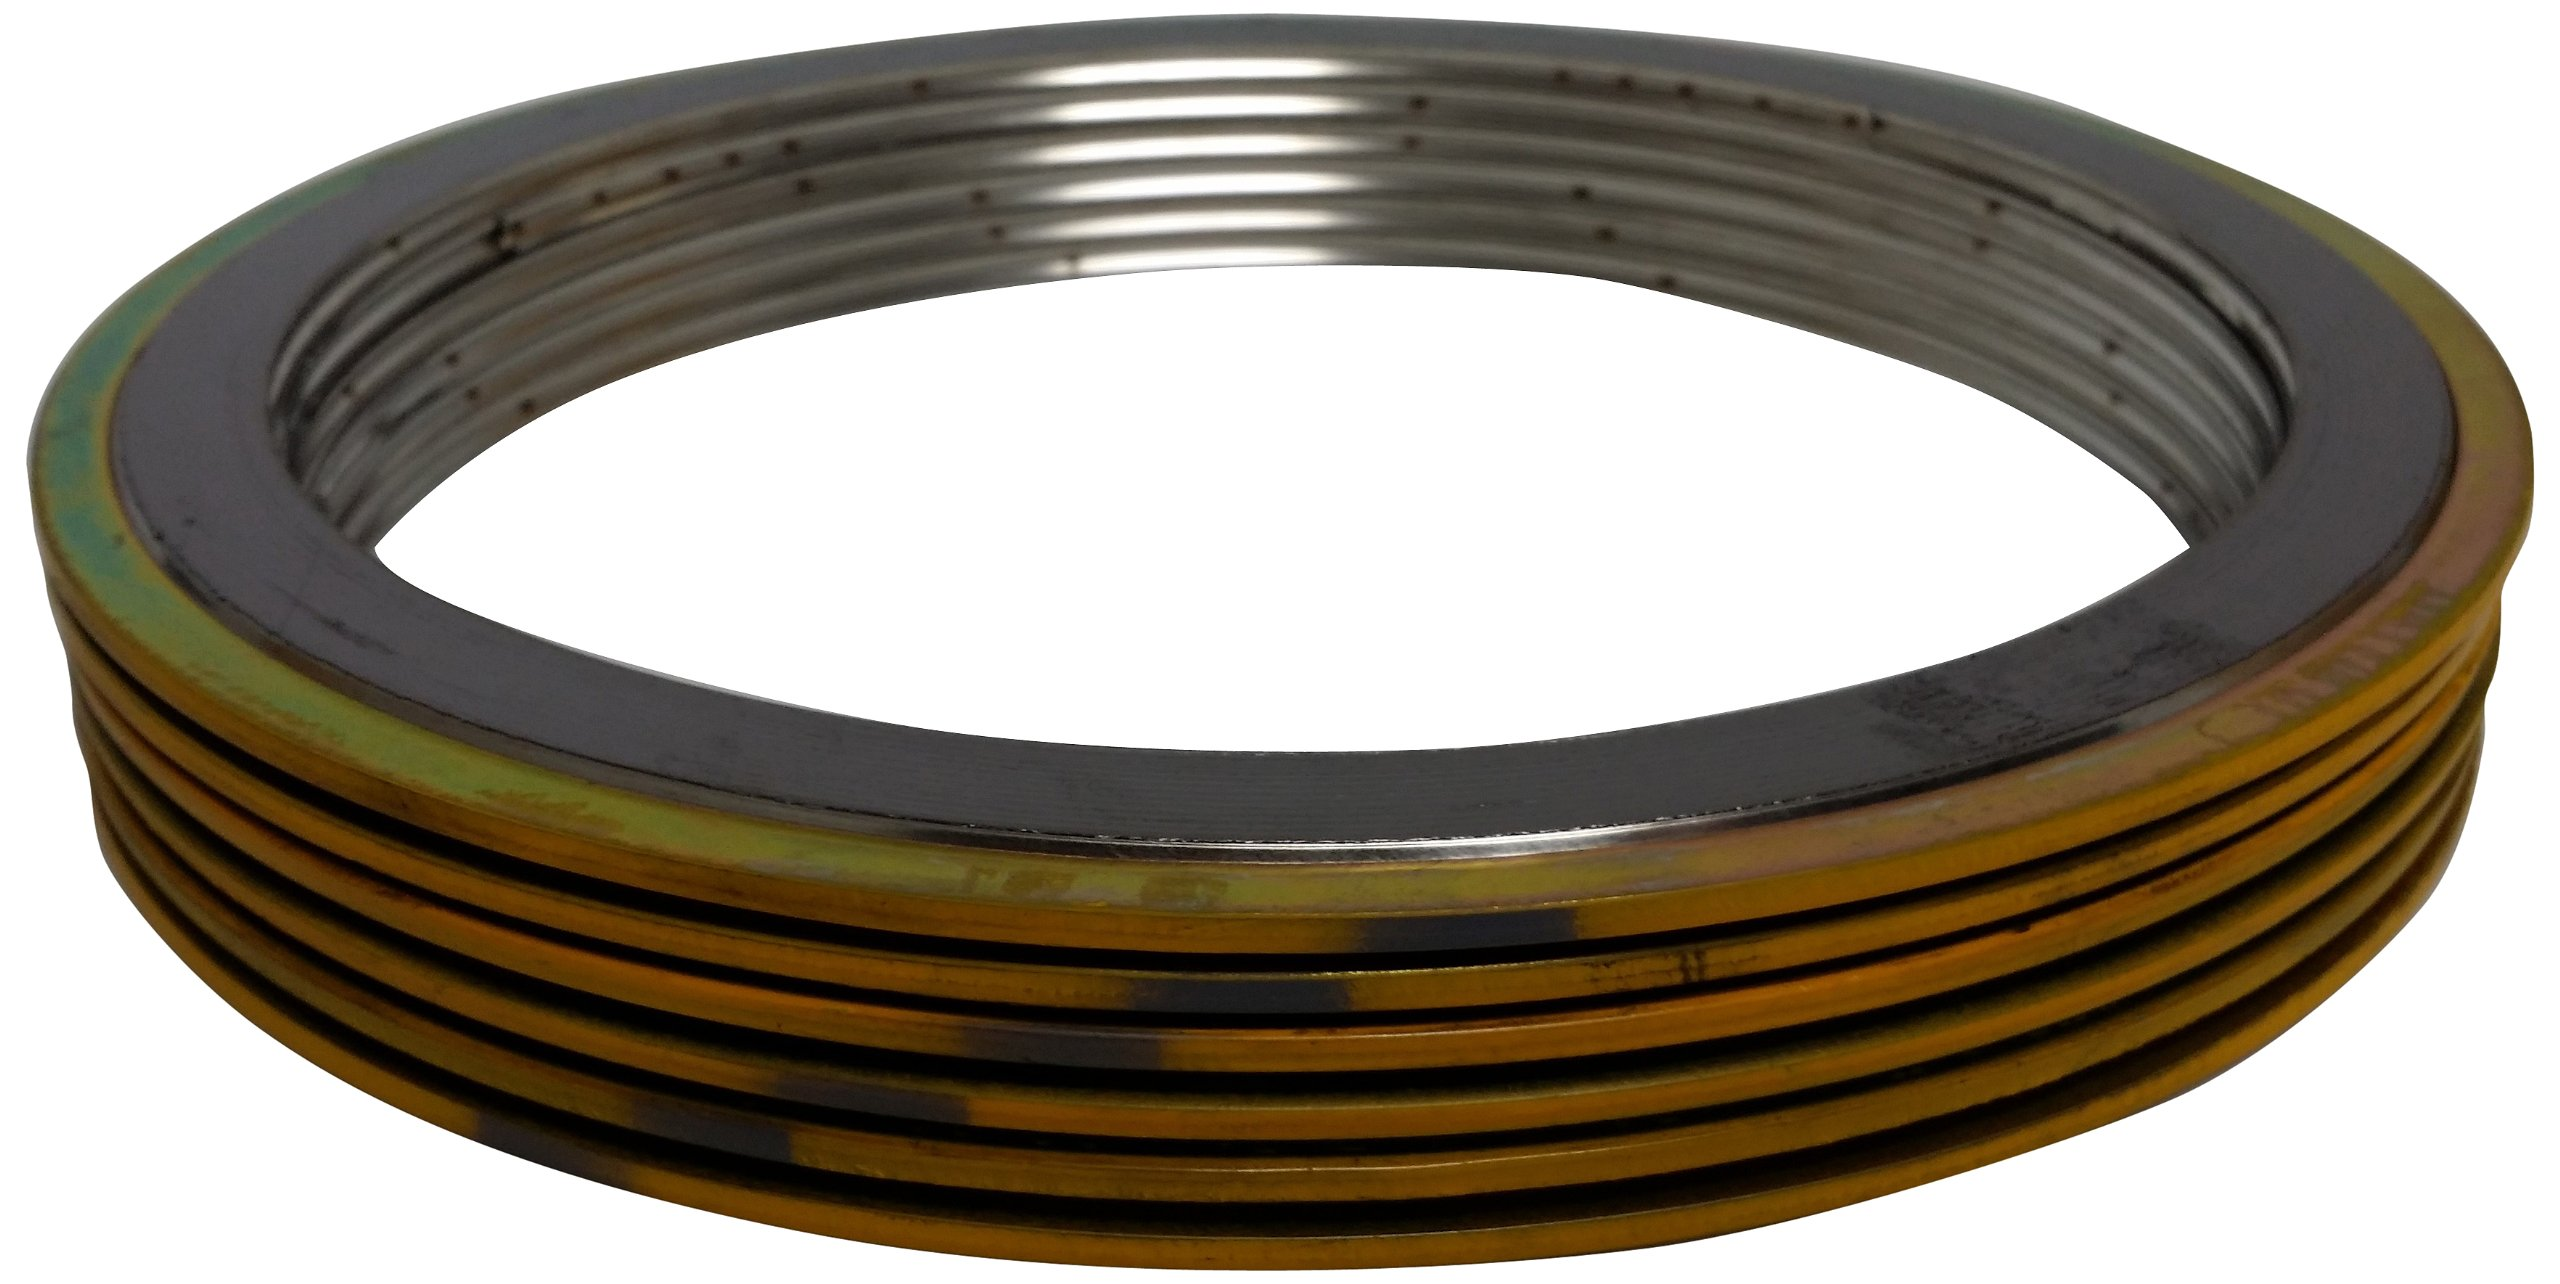 Sterling Seal & Supply SSS 90001500304GR300X6 Yellow Band with Gray Stripe Spiral Wound Gasket, High Temperature (Thermal Cycling) and/or Pressure Variations, 1-1/2'' Pipe Size, 300# Class Flange, 304SS Windings with a Flexible Graphite Filler (Pack of 6) by Sterling Seal & Supply, Inc. (STCC) (Image #1)